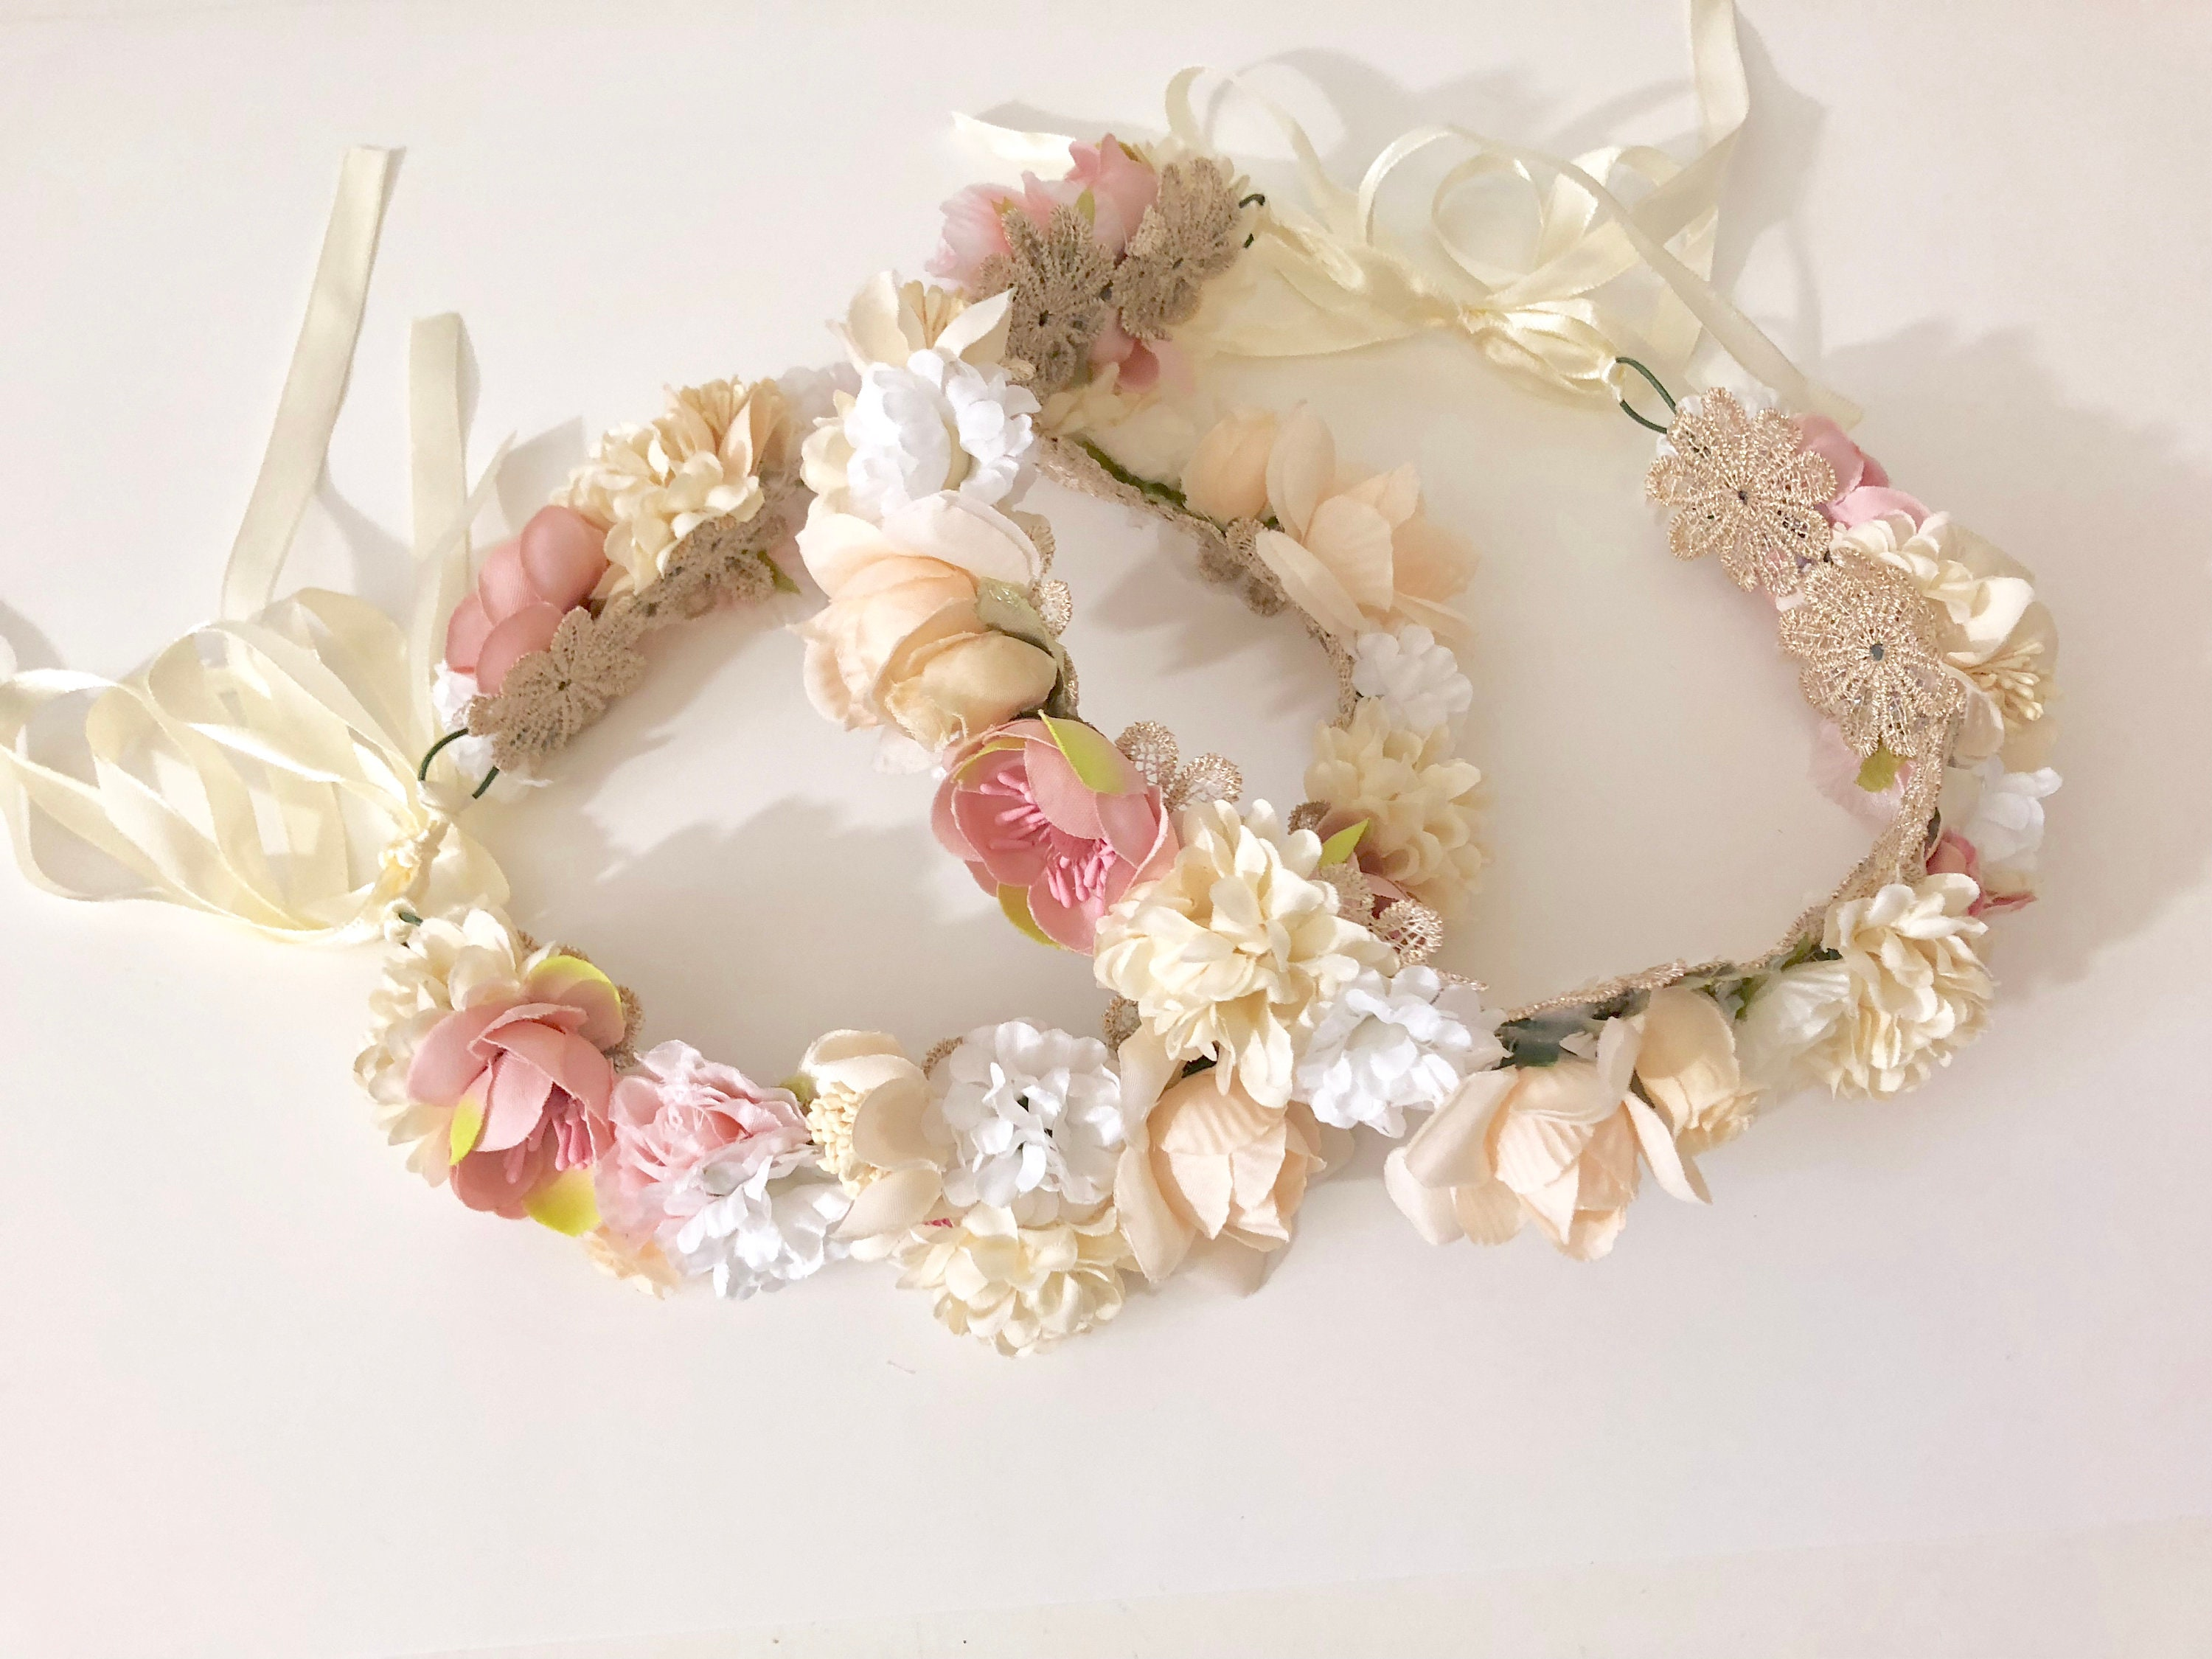 Flower girl crown wreath ivory pink flower crown floral crown flower girl crown wreath ivory pink flower crown floral crown wedding flower crown wreath floral wedding crown flower girl hair crown izmirmasajfo Image collections